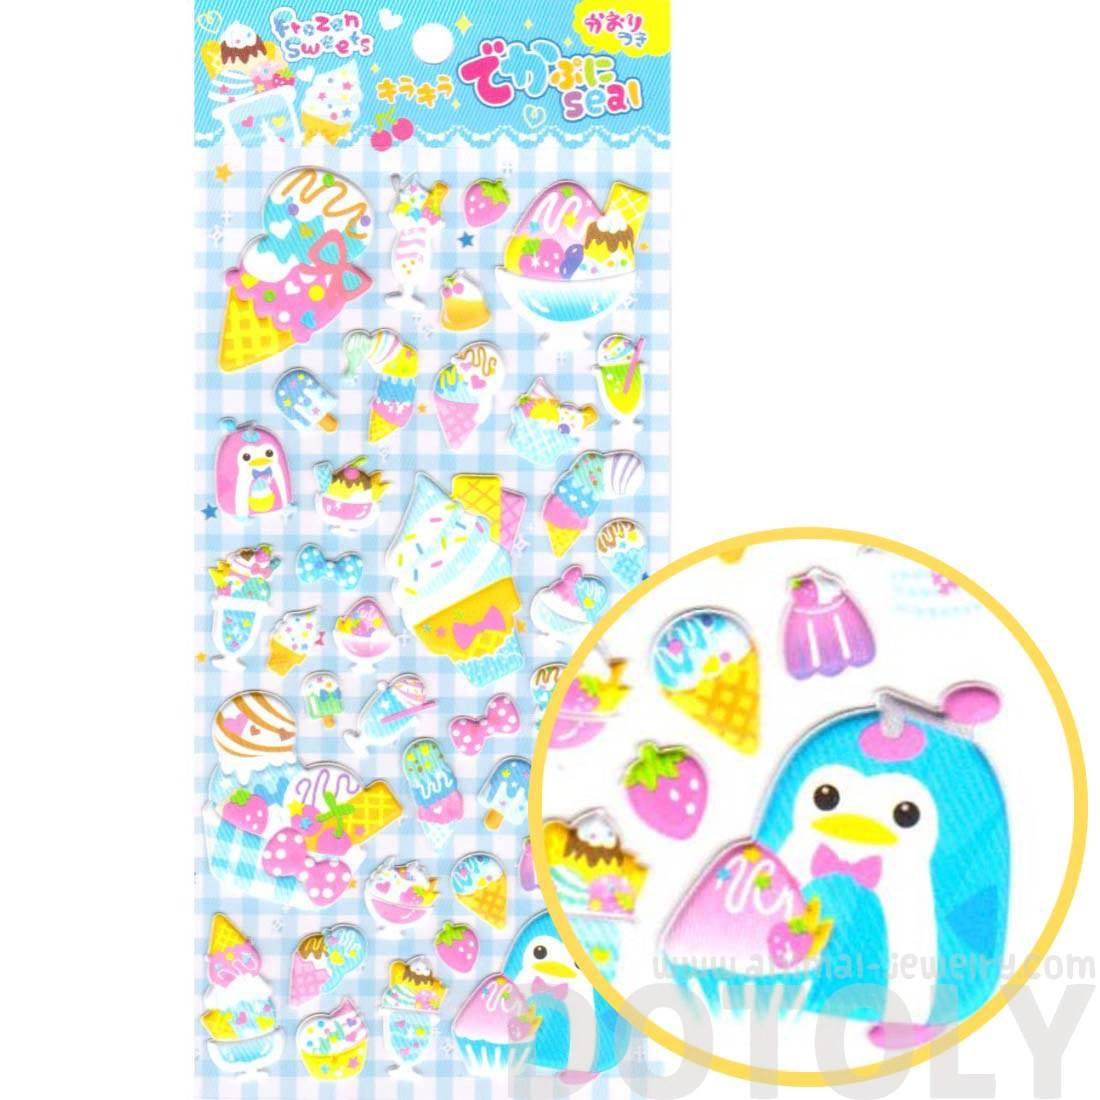 Penguin Ice Cream Desserts Food Themed Puffy Stickers